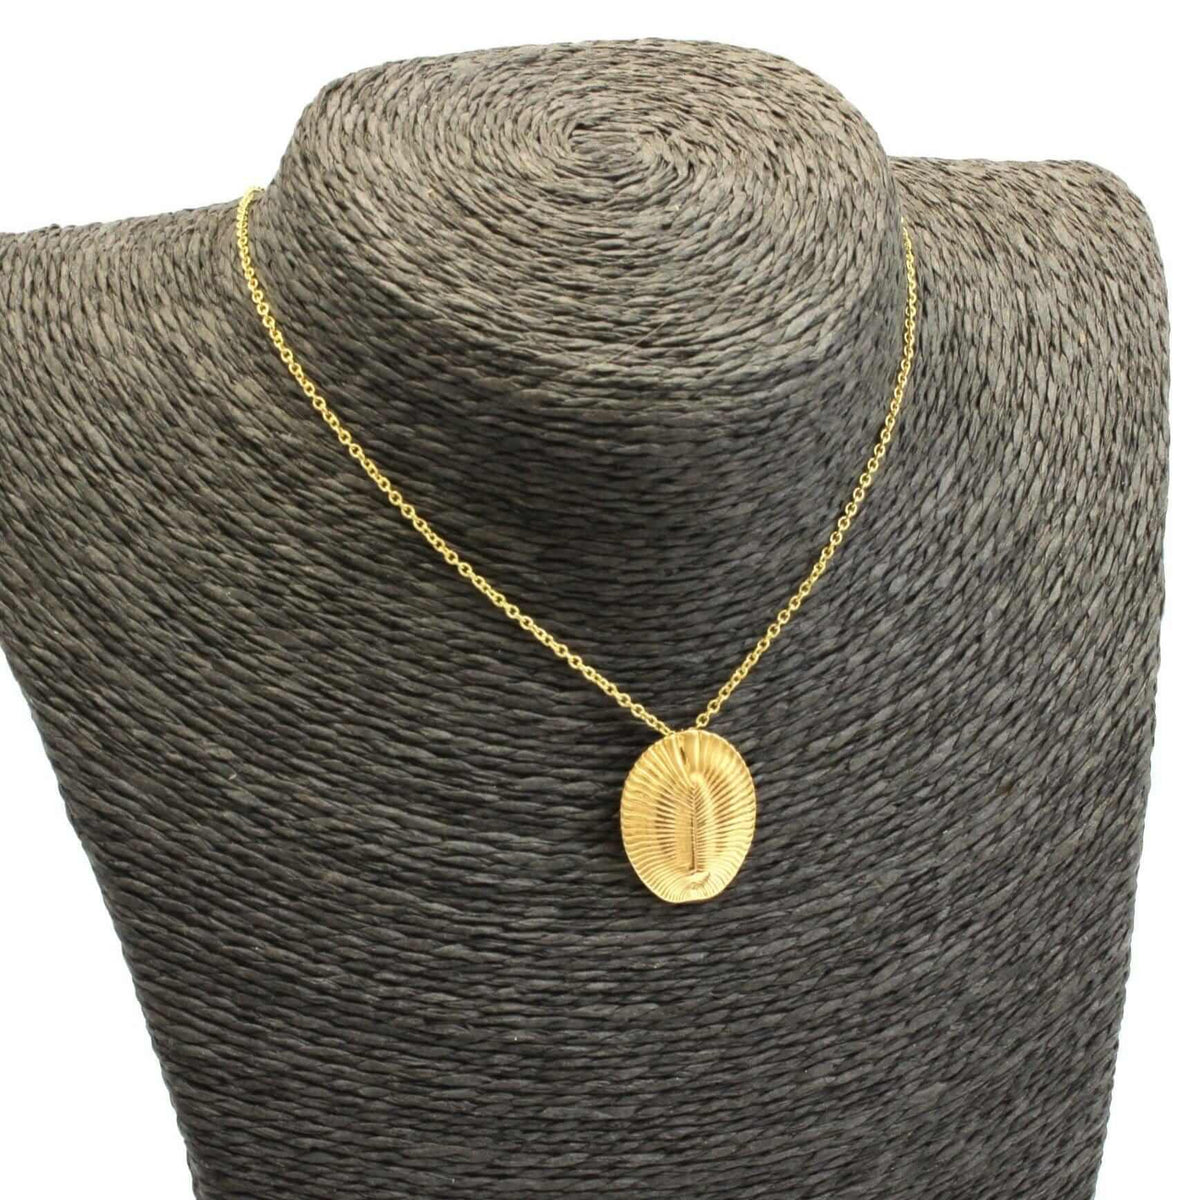 Dickisonia fossil pendant 14K goldplated brass